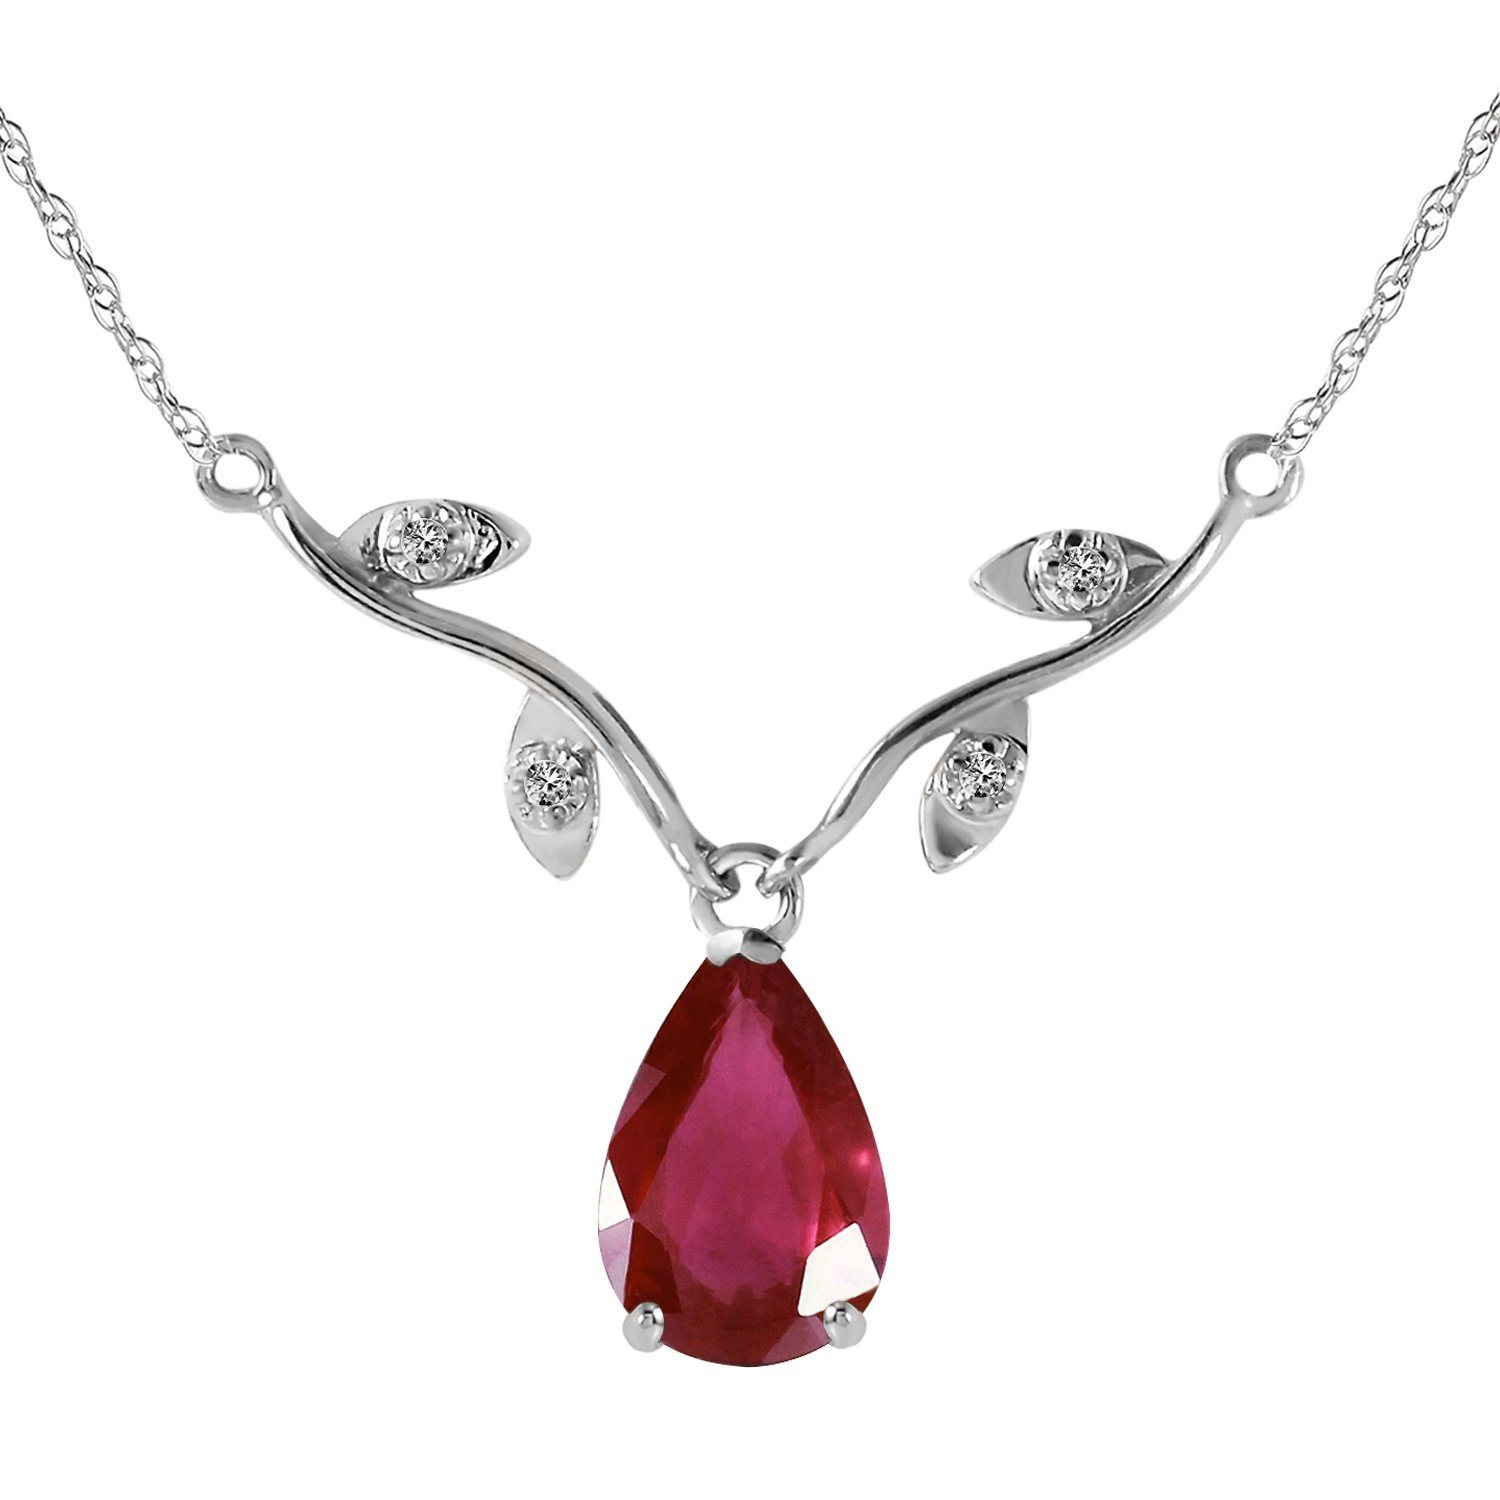 14k 16'' Solid White Gold 1.52 Carat Natural Ruby Diamond Pendant Necklace